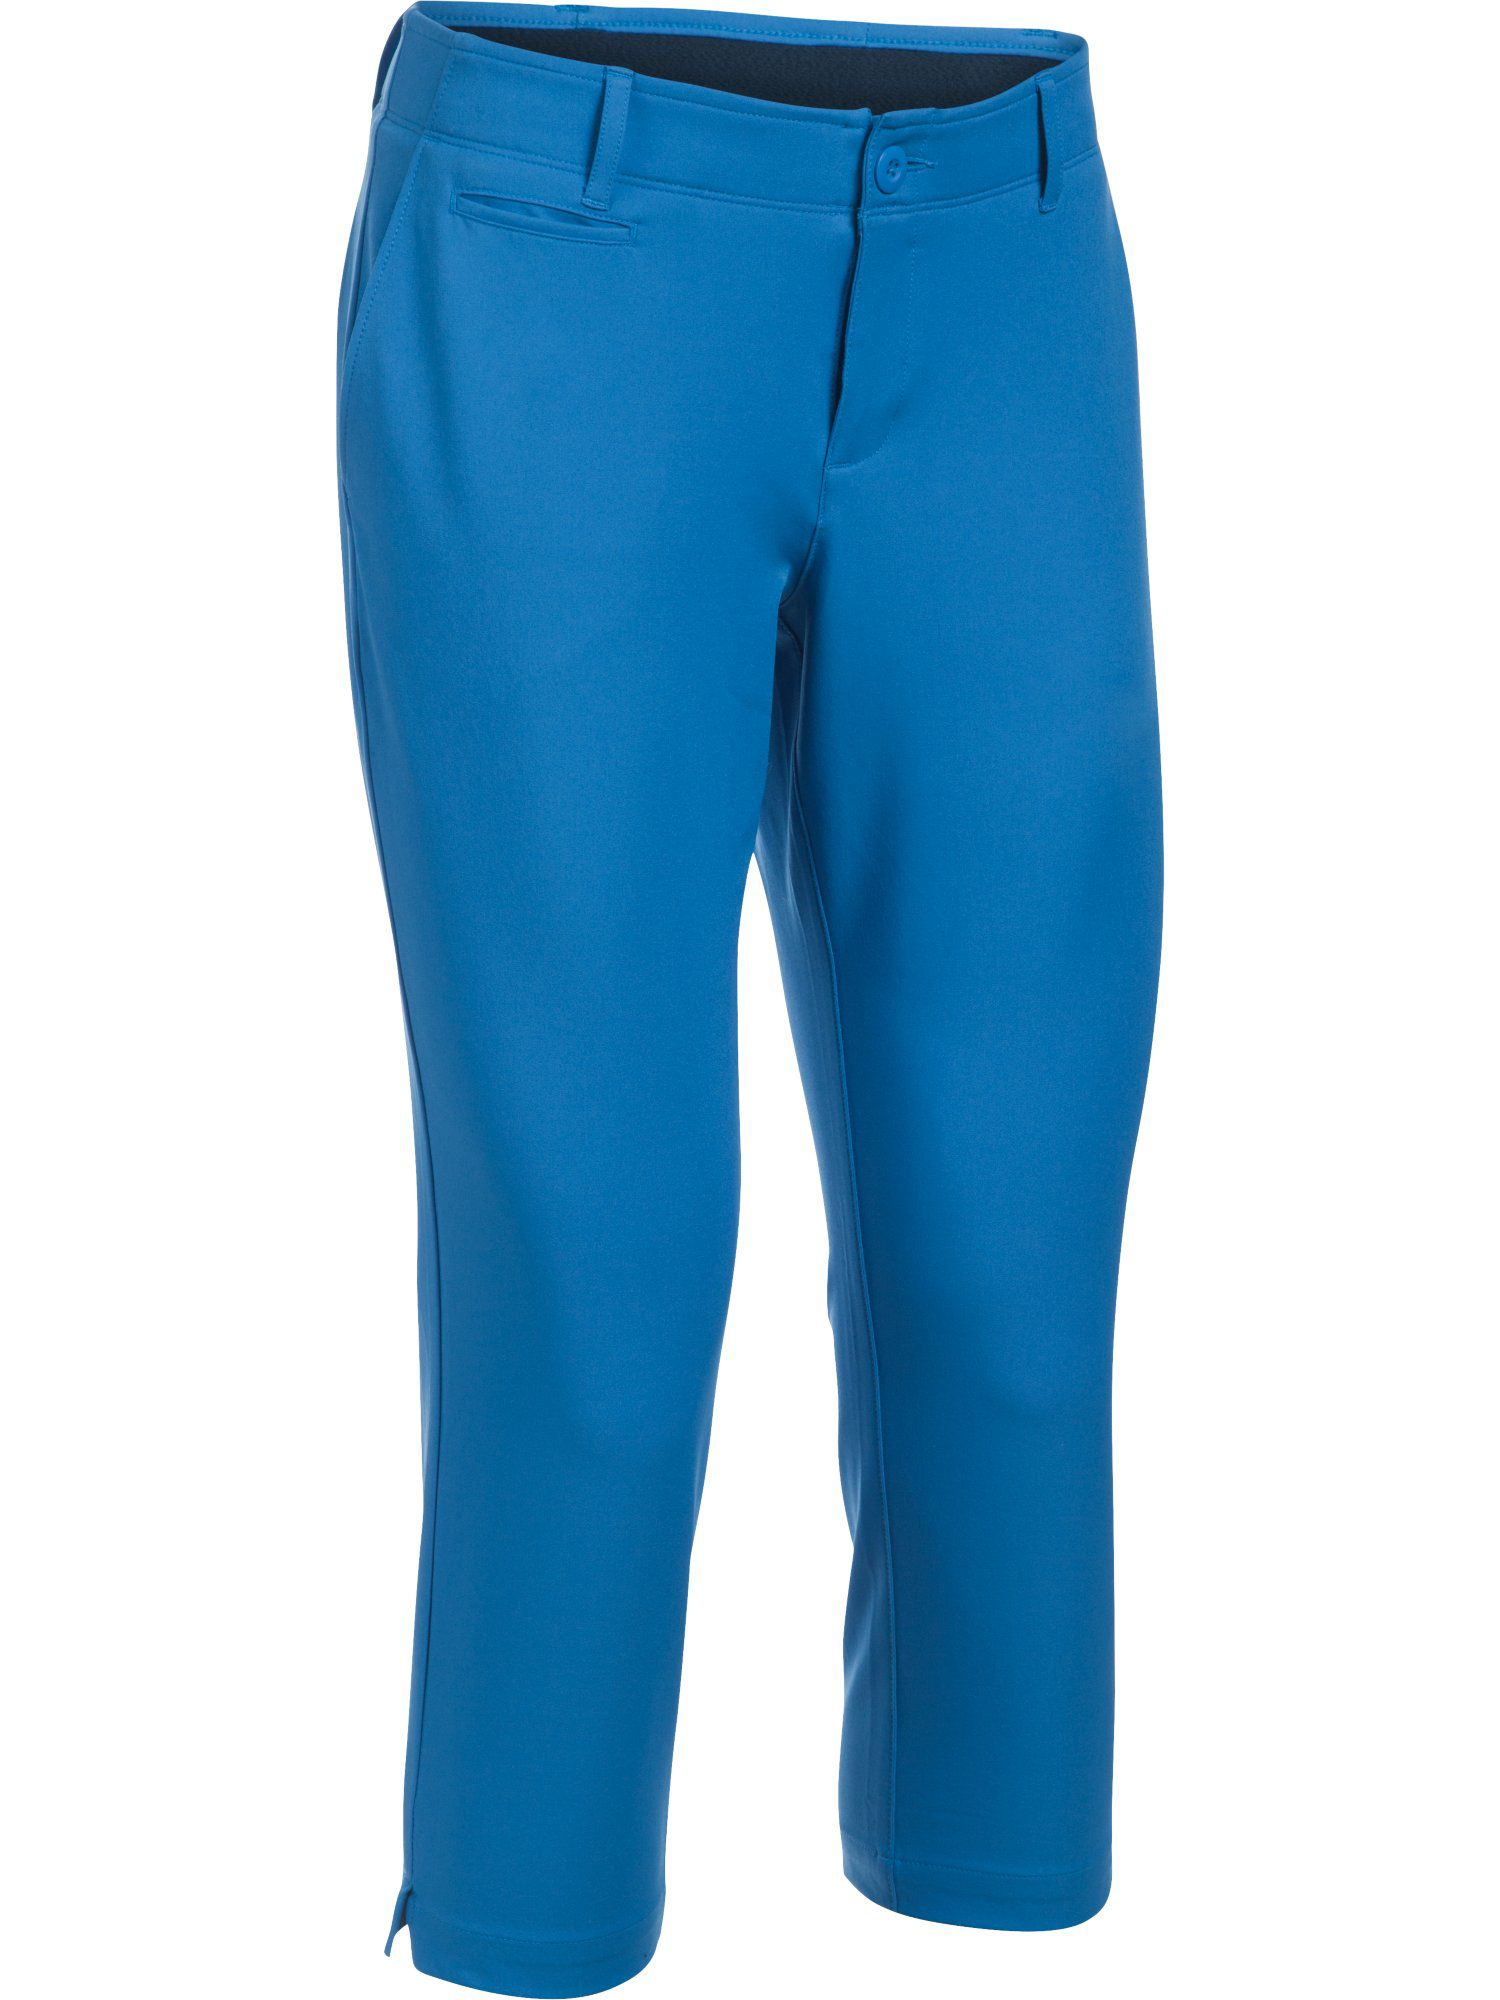 Under Armour Links Capri, Blue